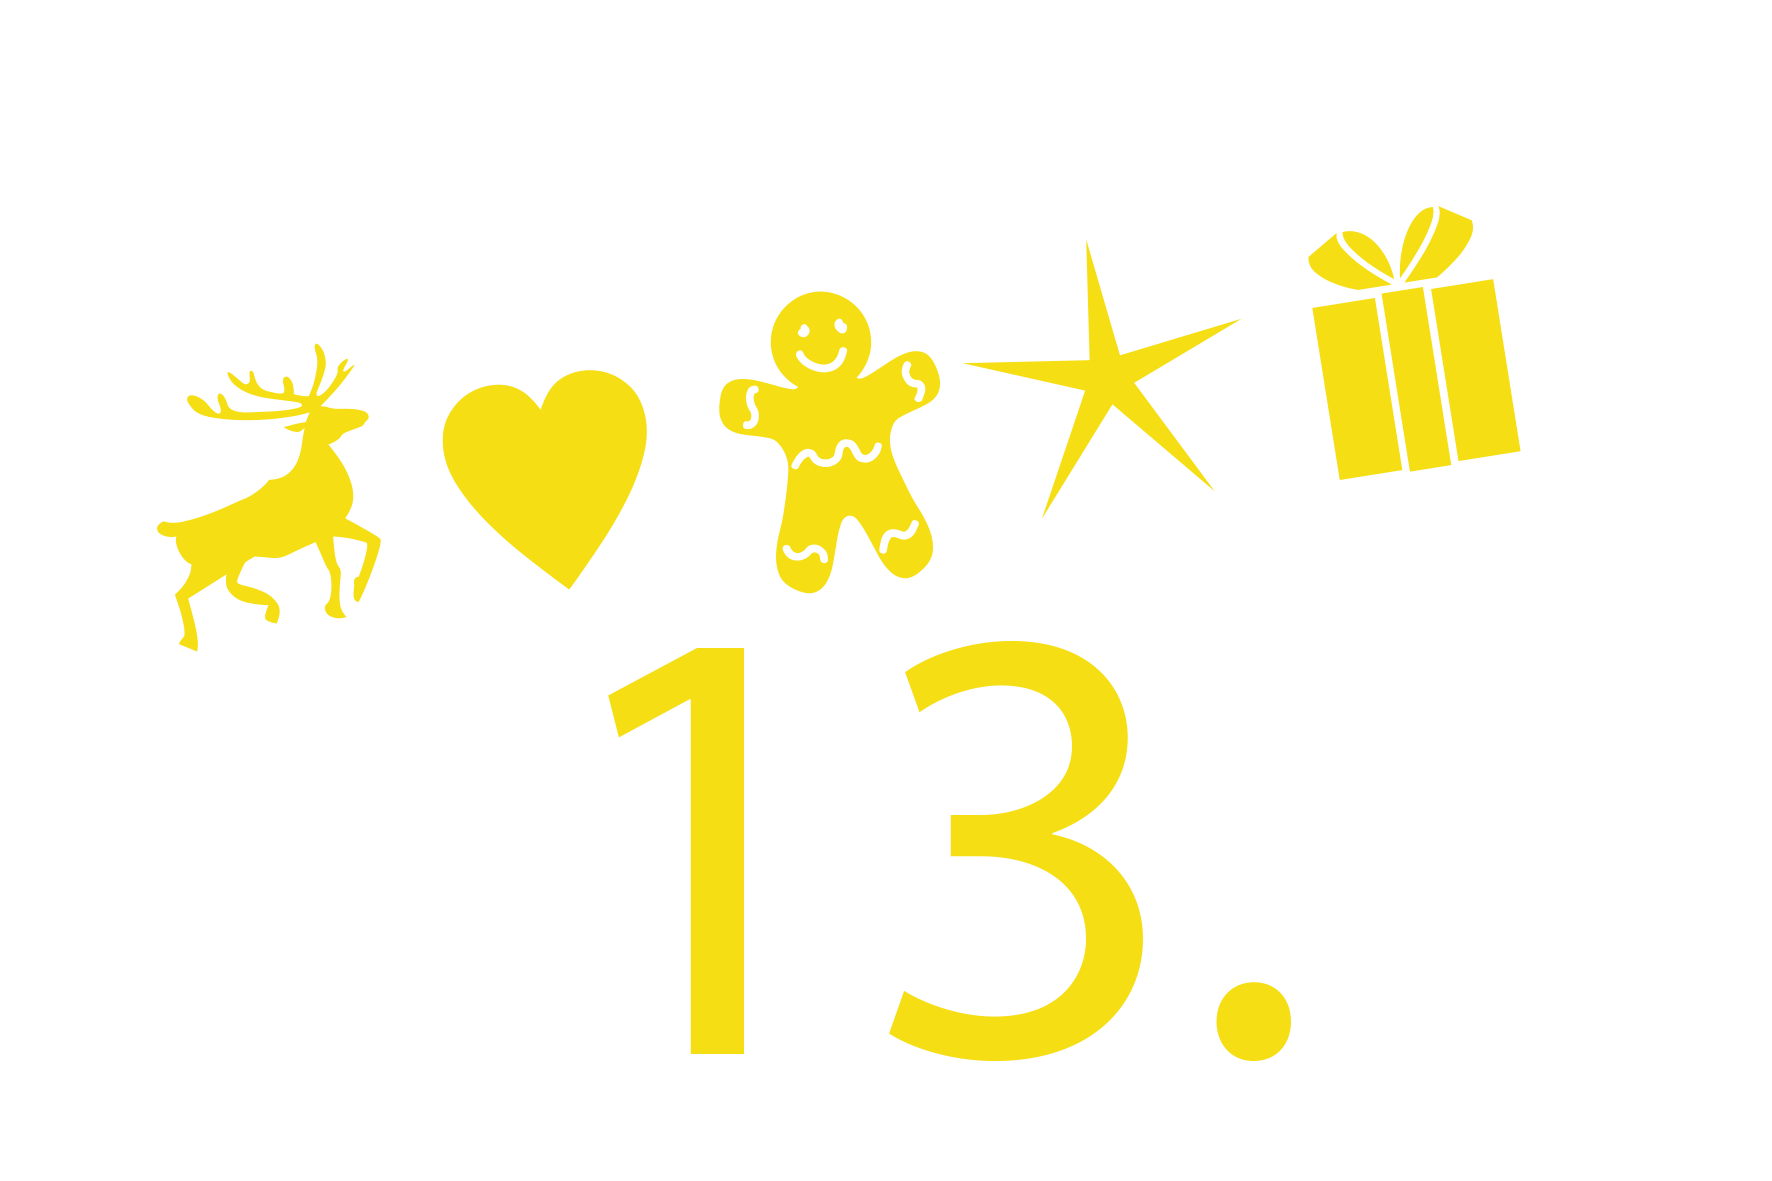 13.12.png